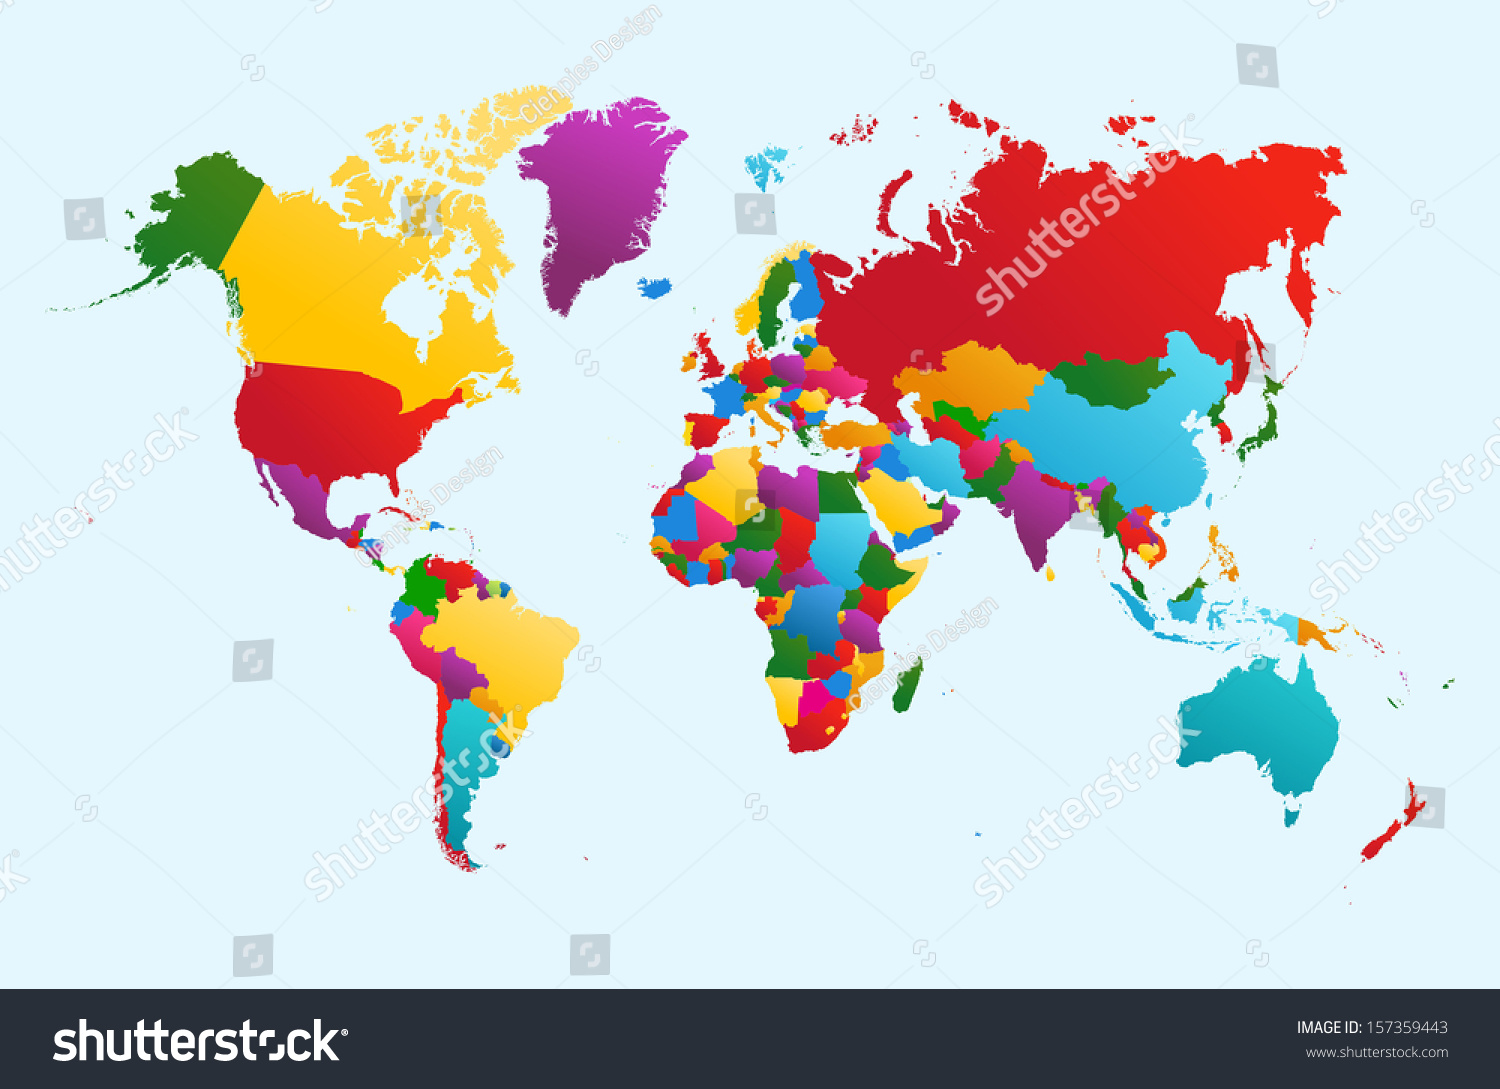 Map clipart easy world map decal etsy mapsherpa cosmographics world map colorful countries atlas eps stock vector easy world map gumiabroncs Gallery